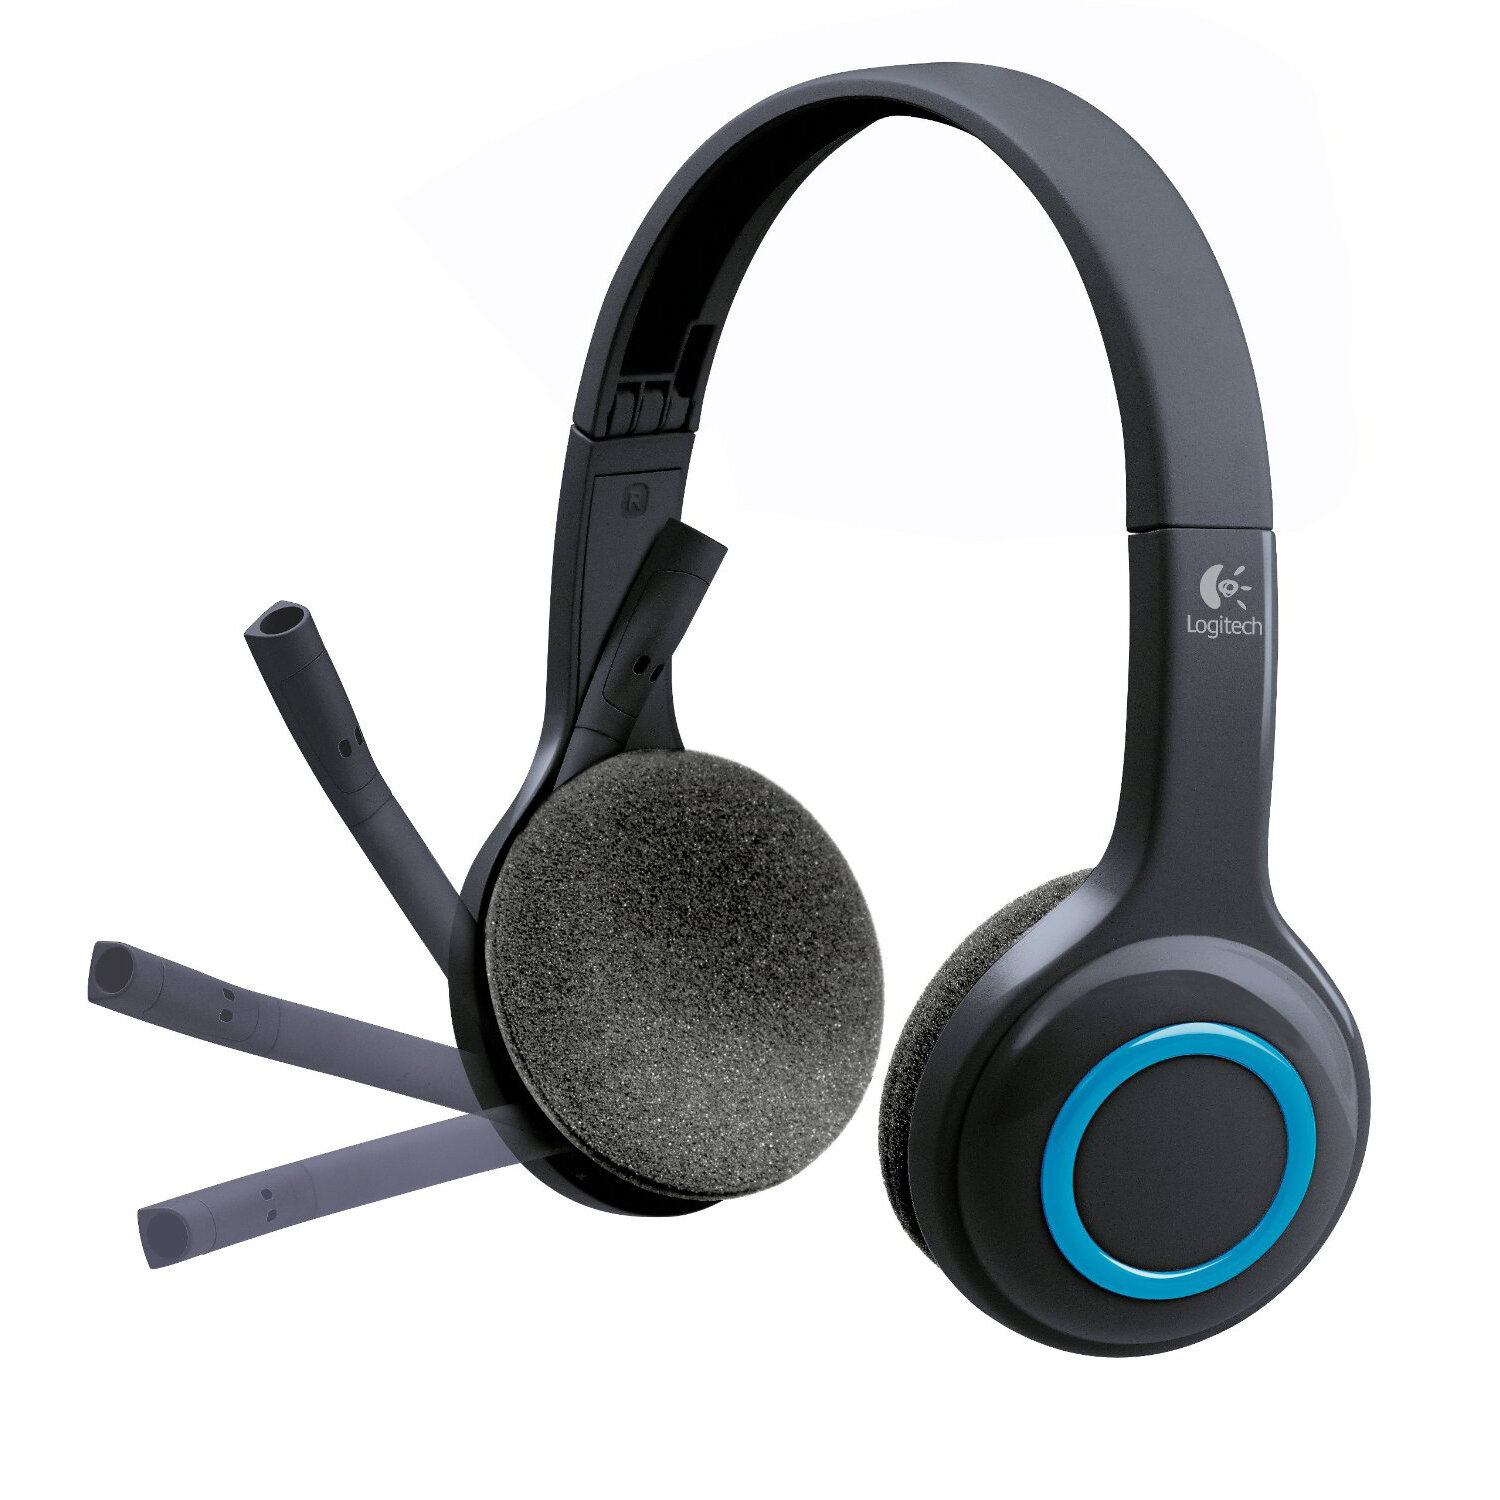 981-000462: Logitech H600 WIRELESS USB HEADSET